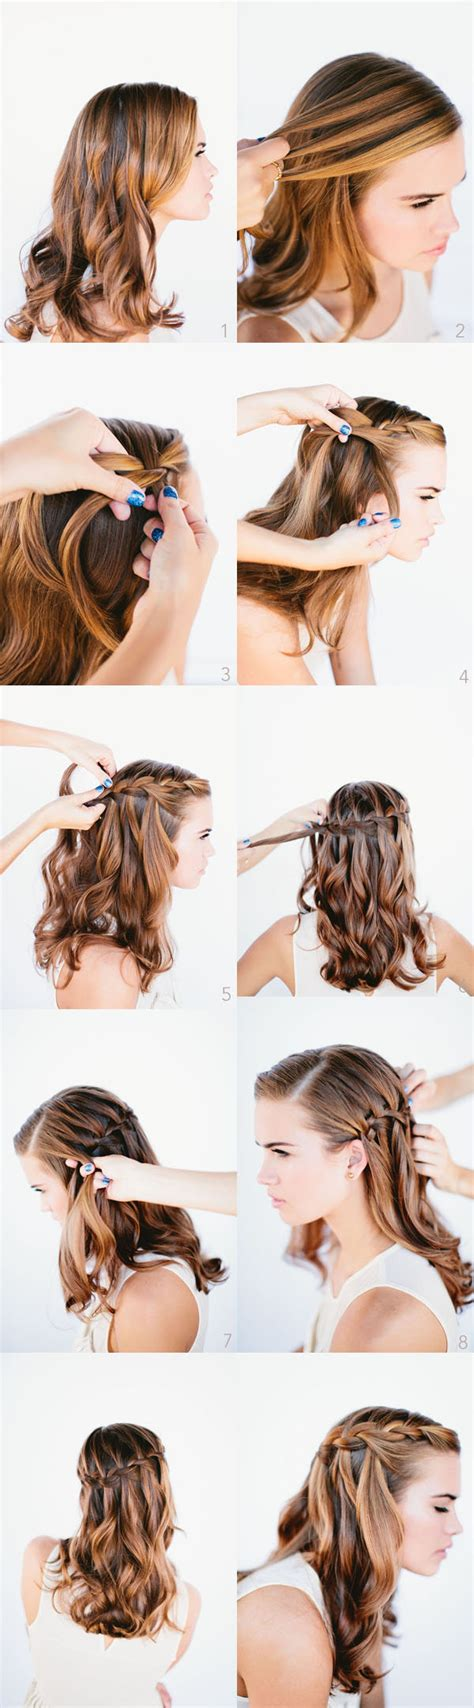 haircut for long hair step by step 20 beautiful hairstyles for long hair step by step